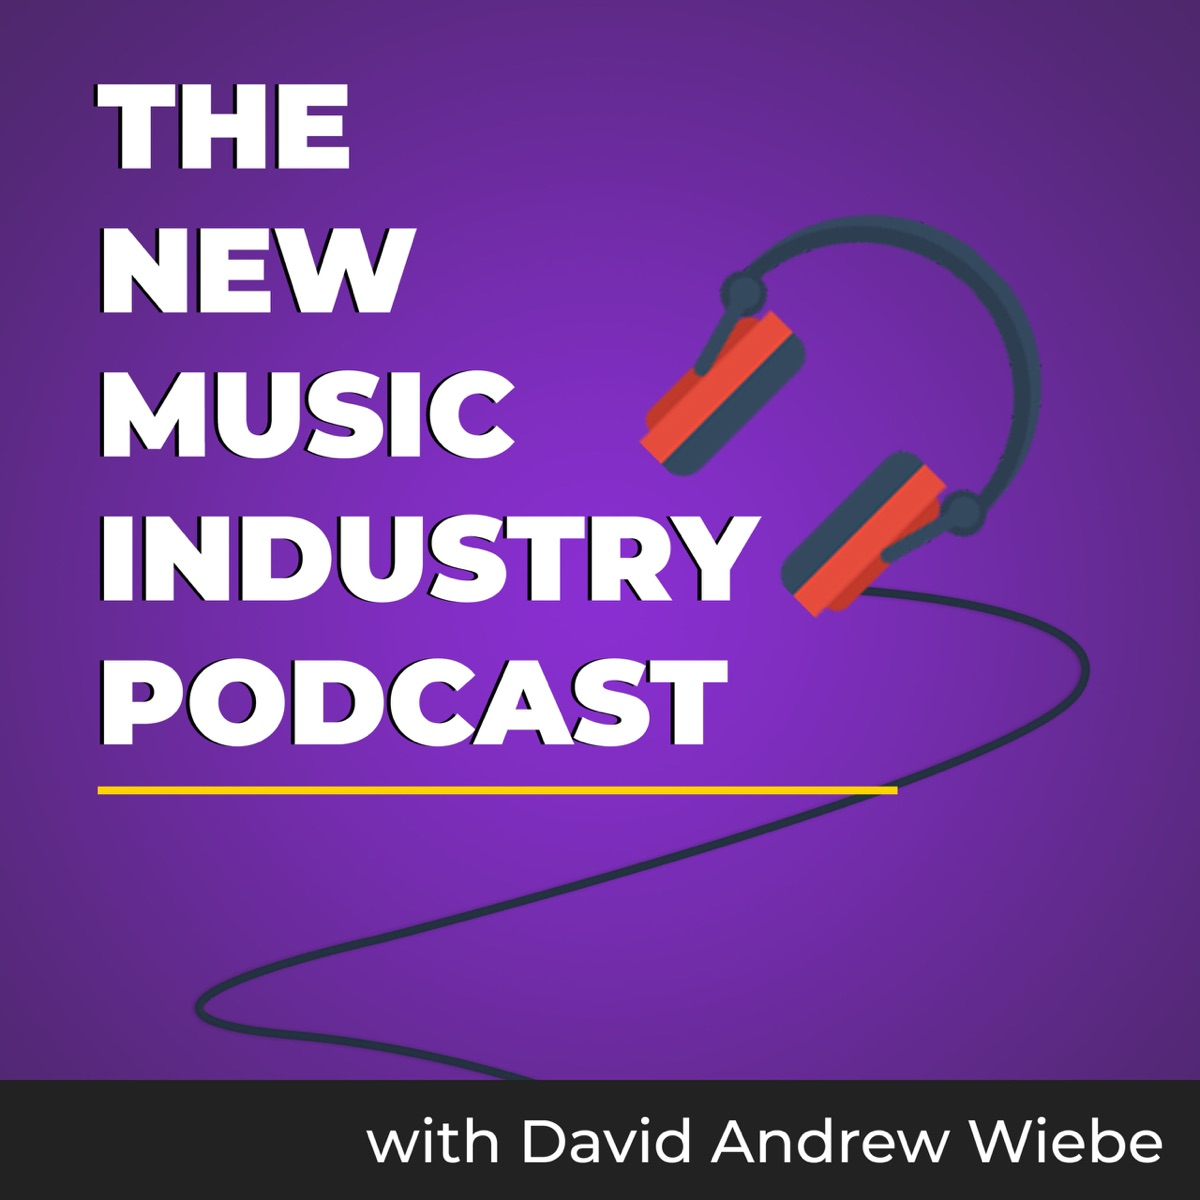 The New Music Industry Podcast   MusicEntrepreneurHQ.com   with David Andrew Wiebe